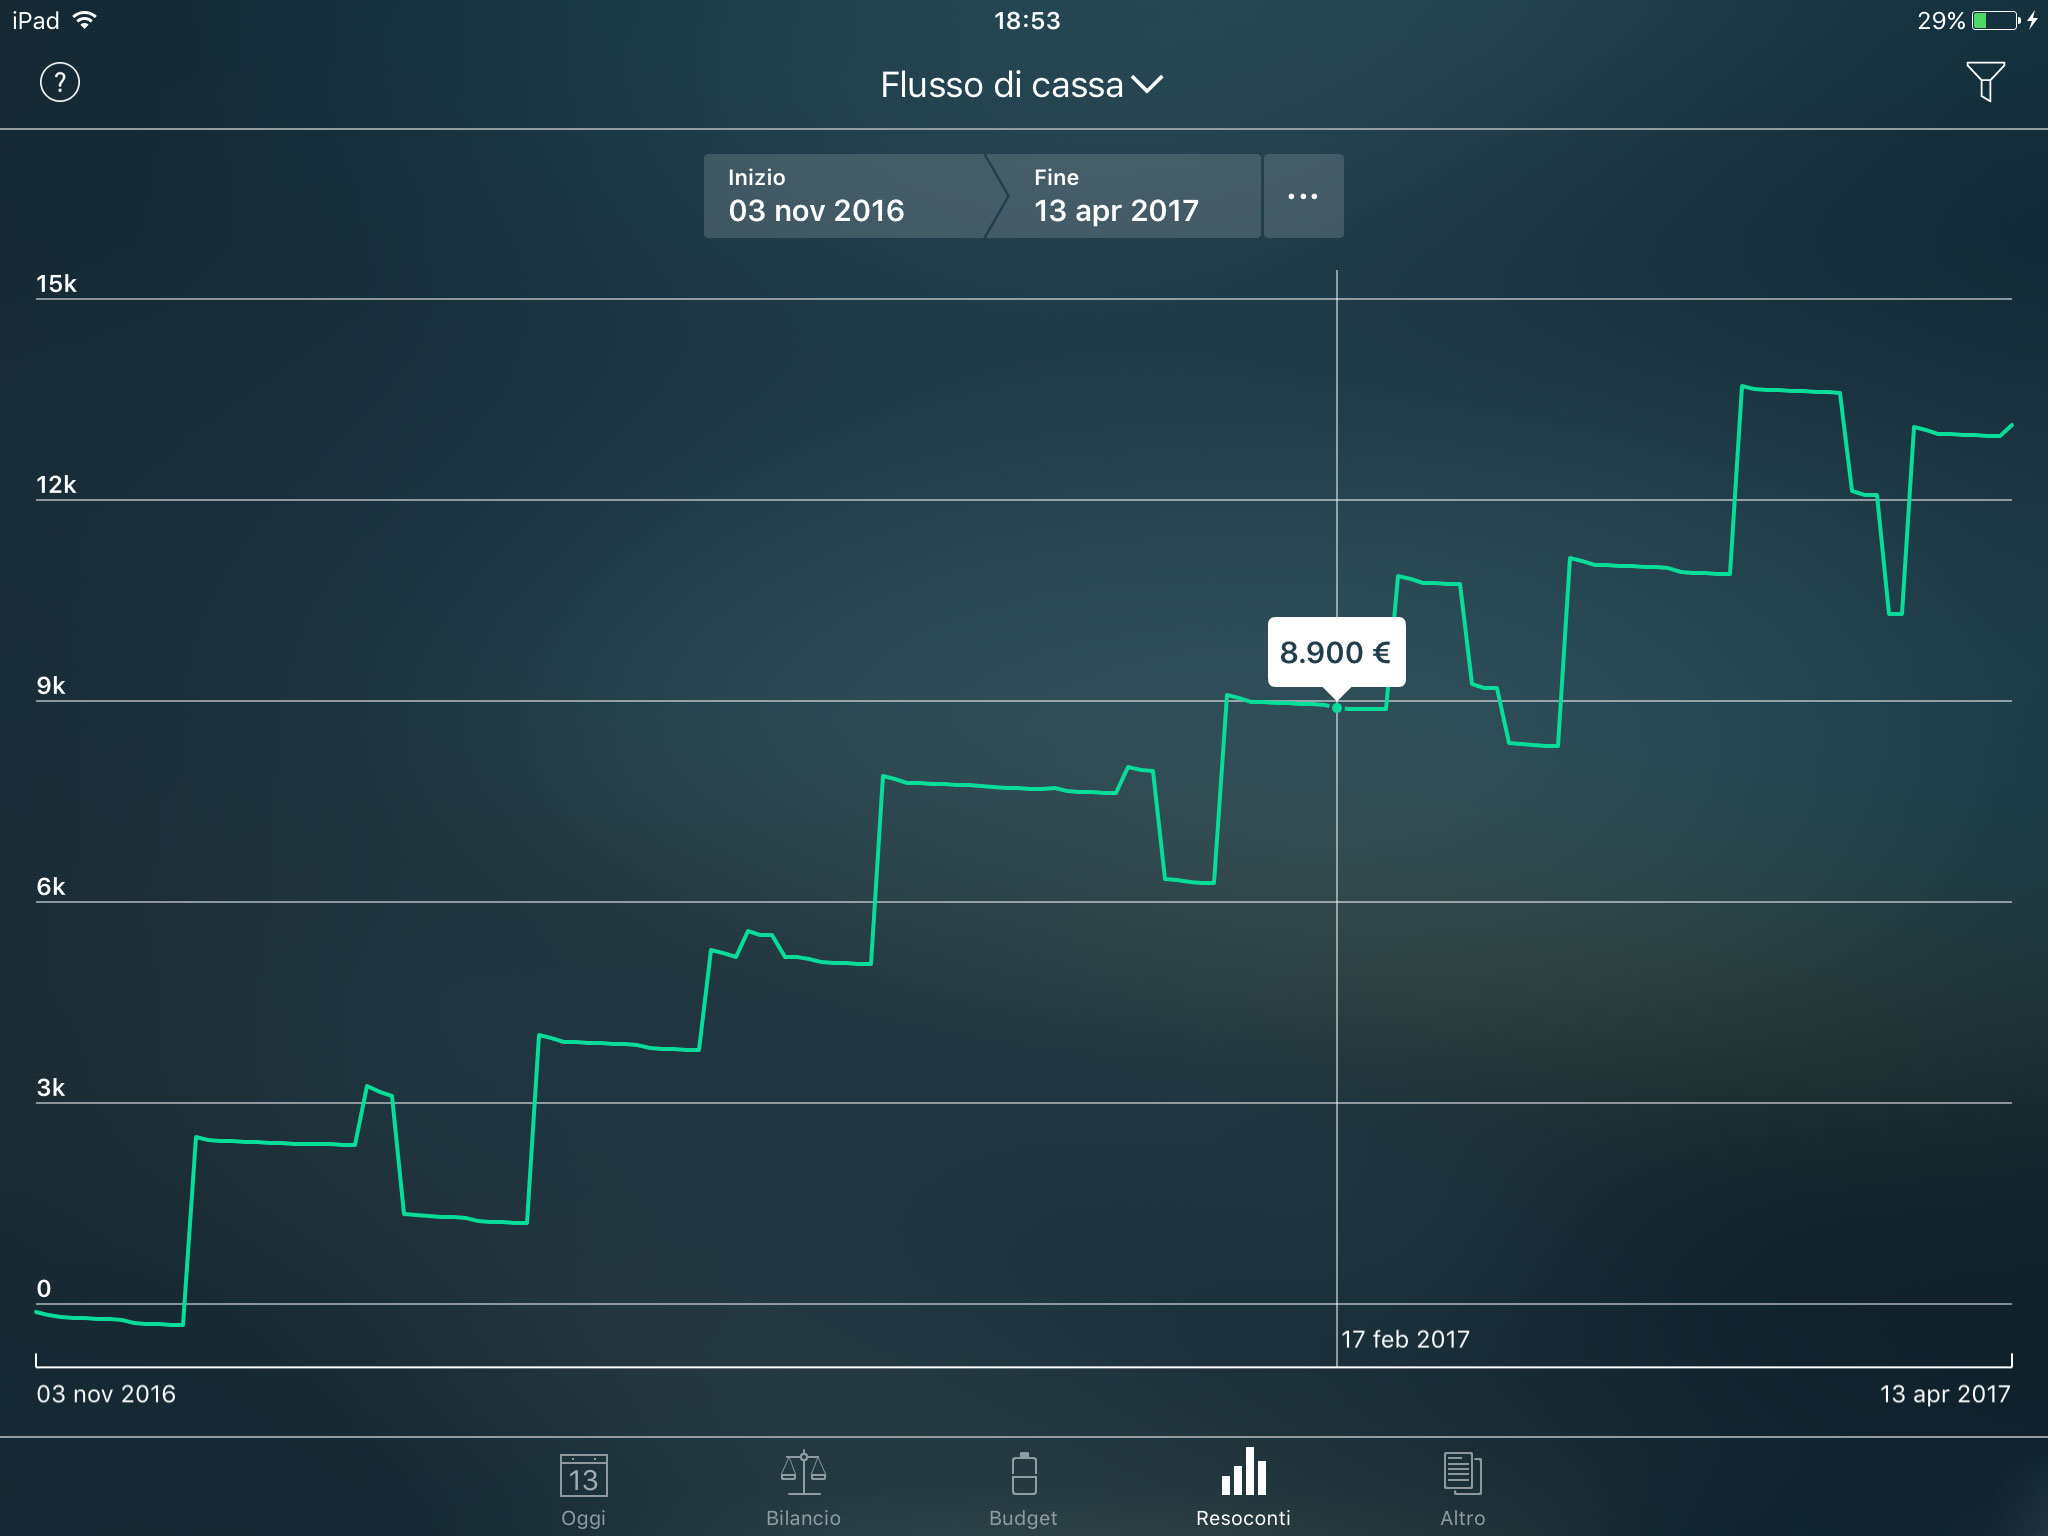 Money Pro - Resoconto Flusso di cassa - iPad